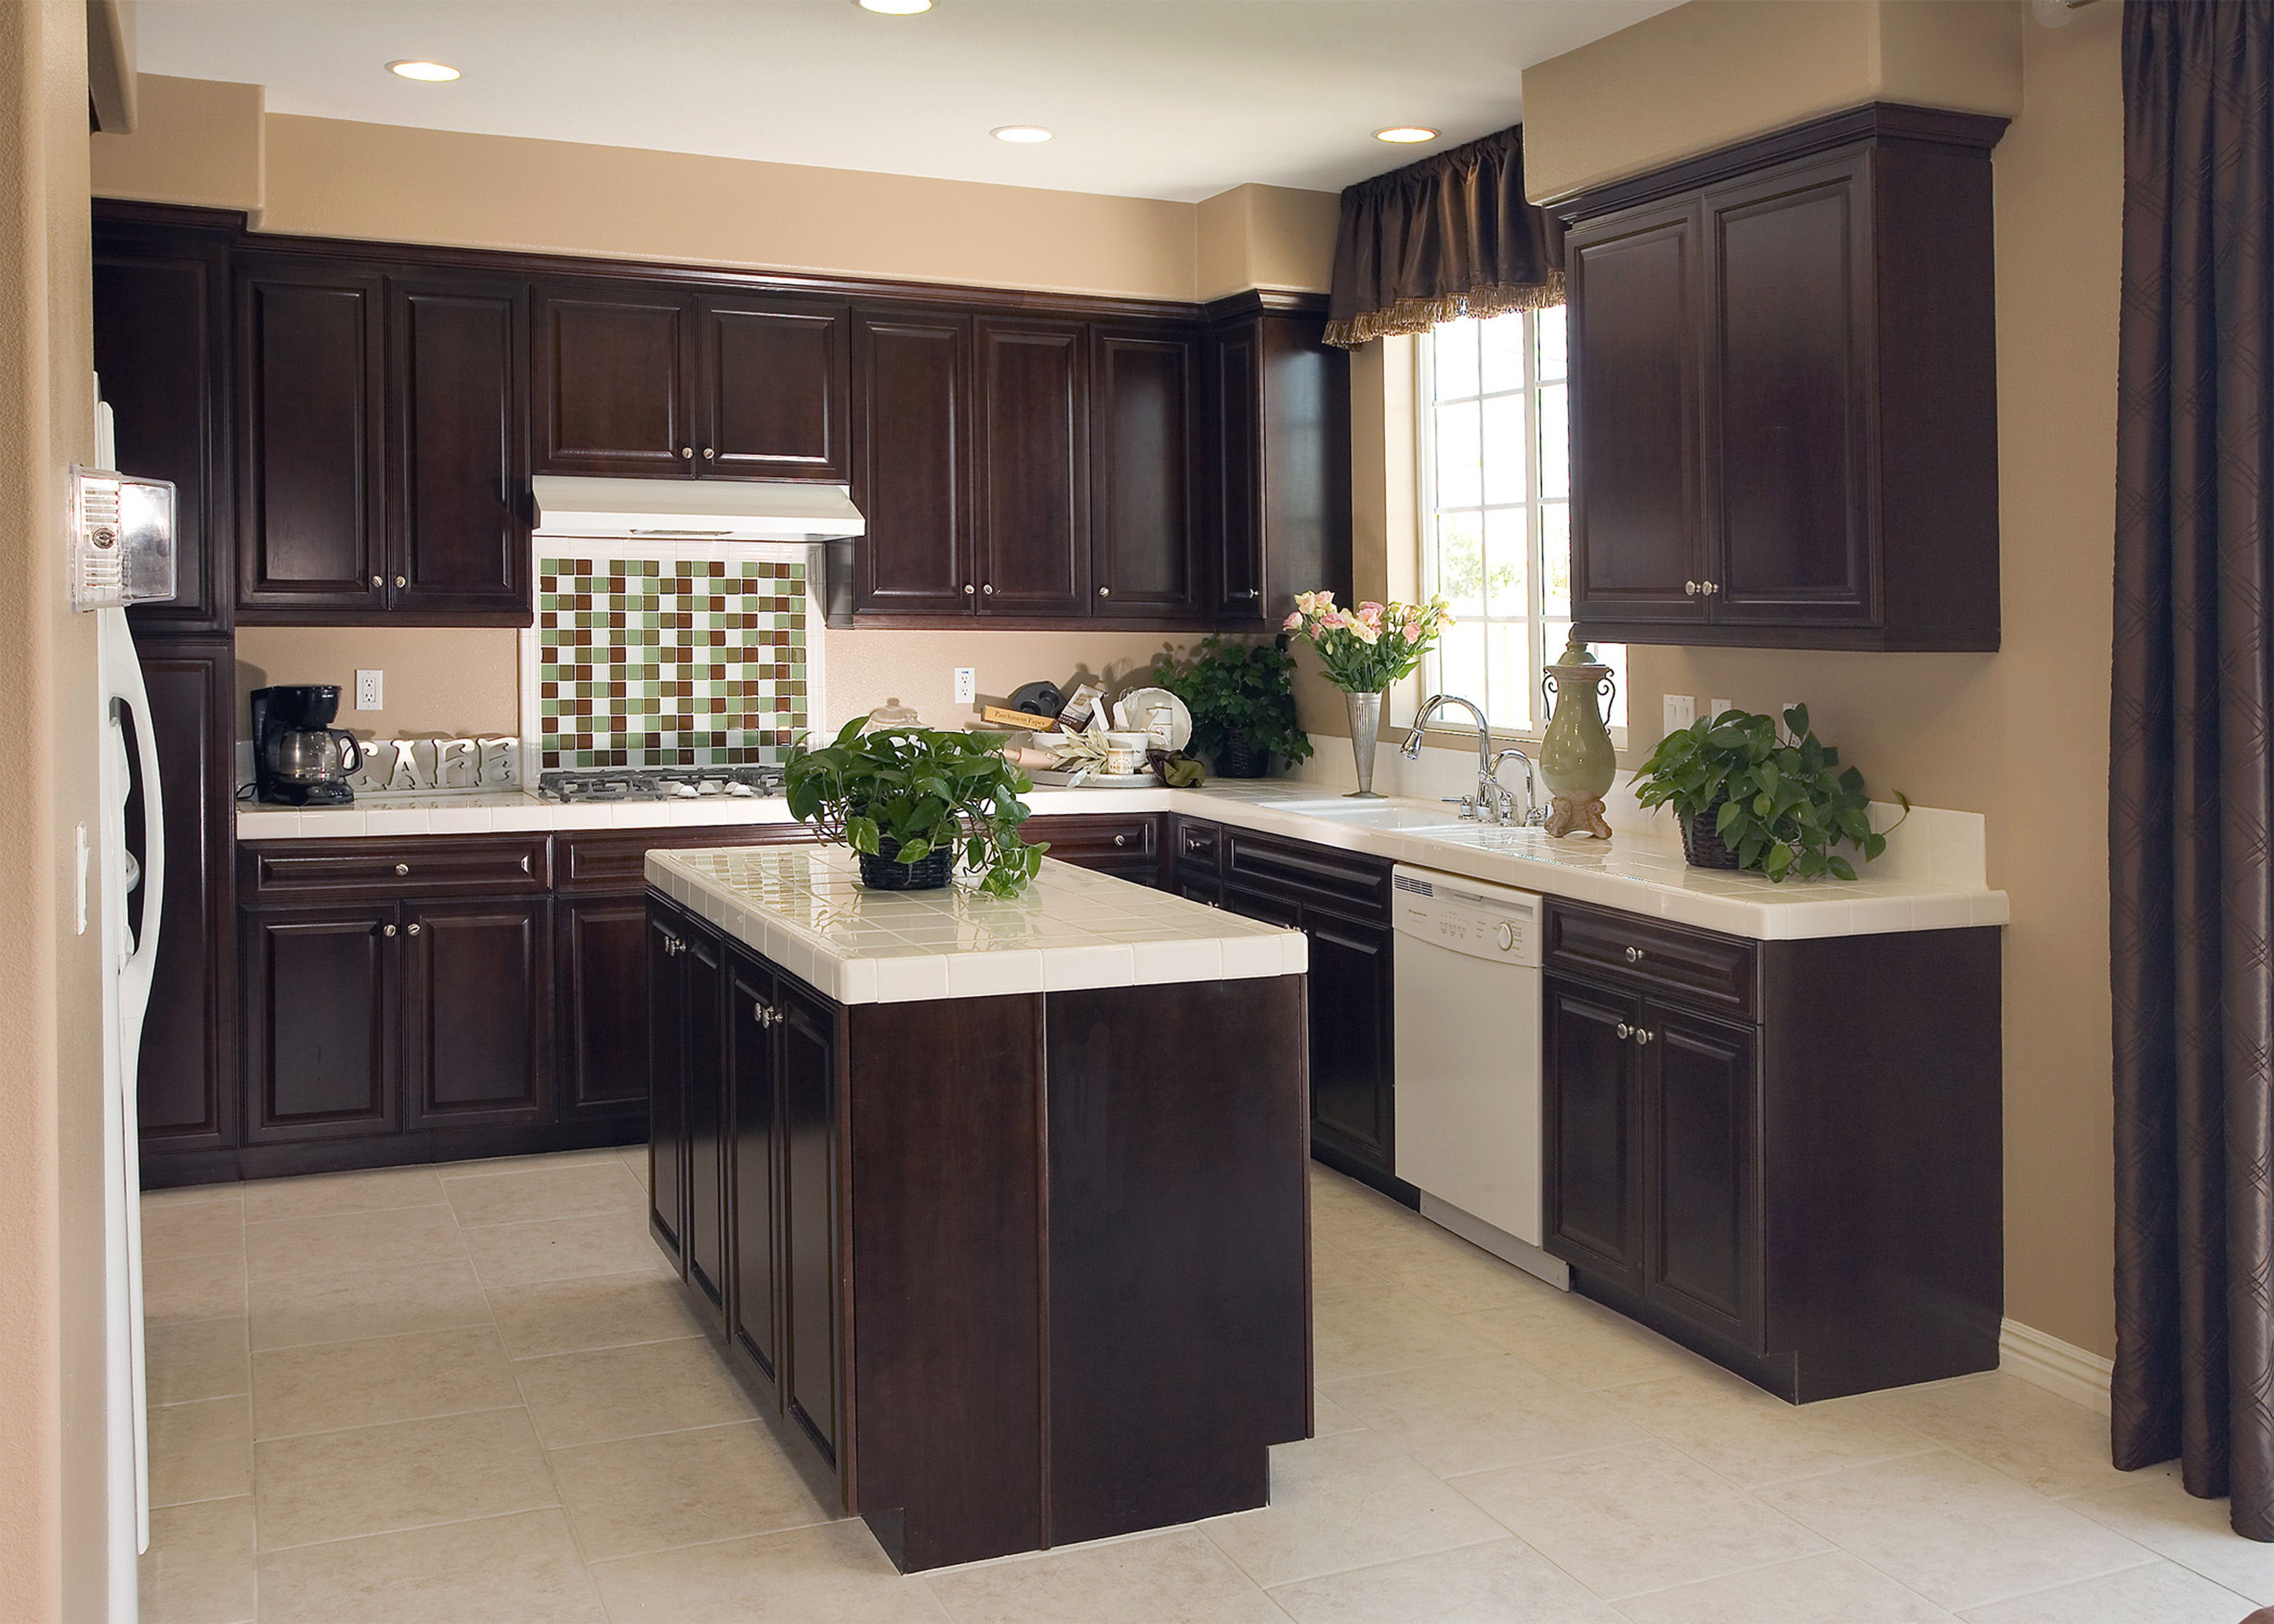 dark wood kitchen cabinets - Kitchen Design Ideas Dark Cabinets